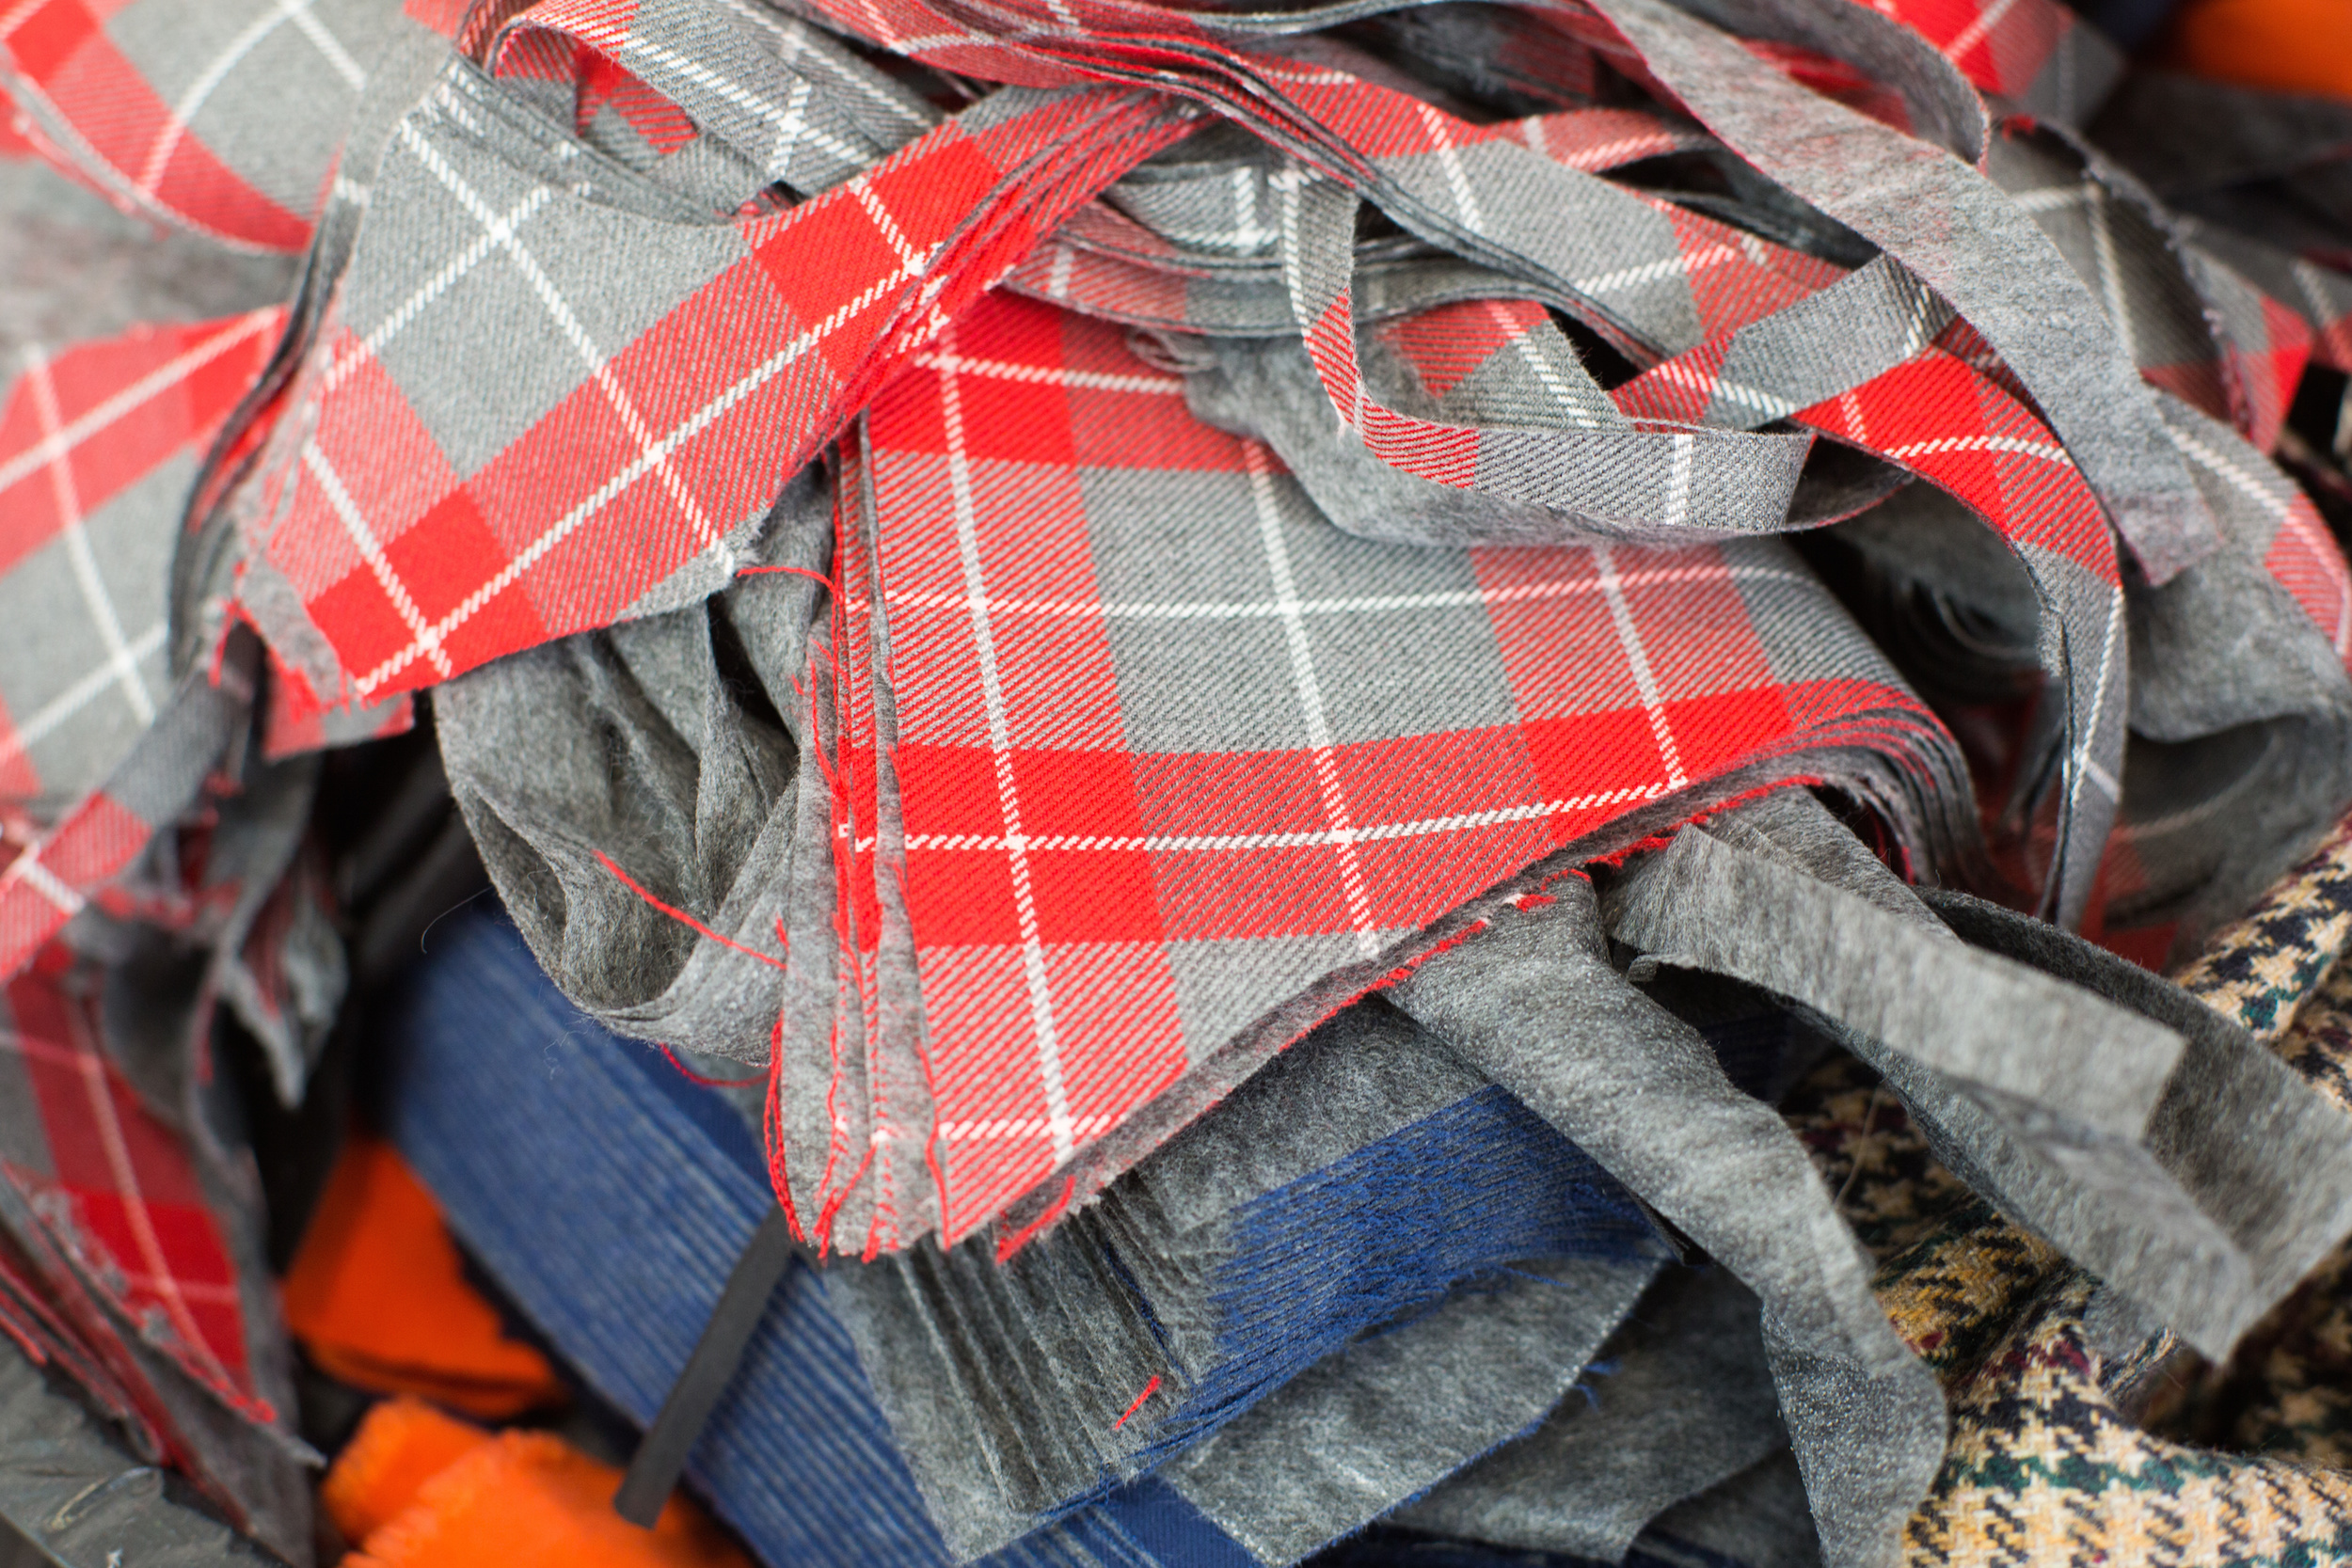 fabric waste - faashion industry - sustainability - sustainable fashion - fashion industry - waste - clothing - childrens clothing